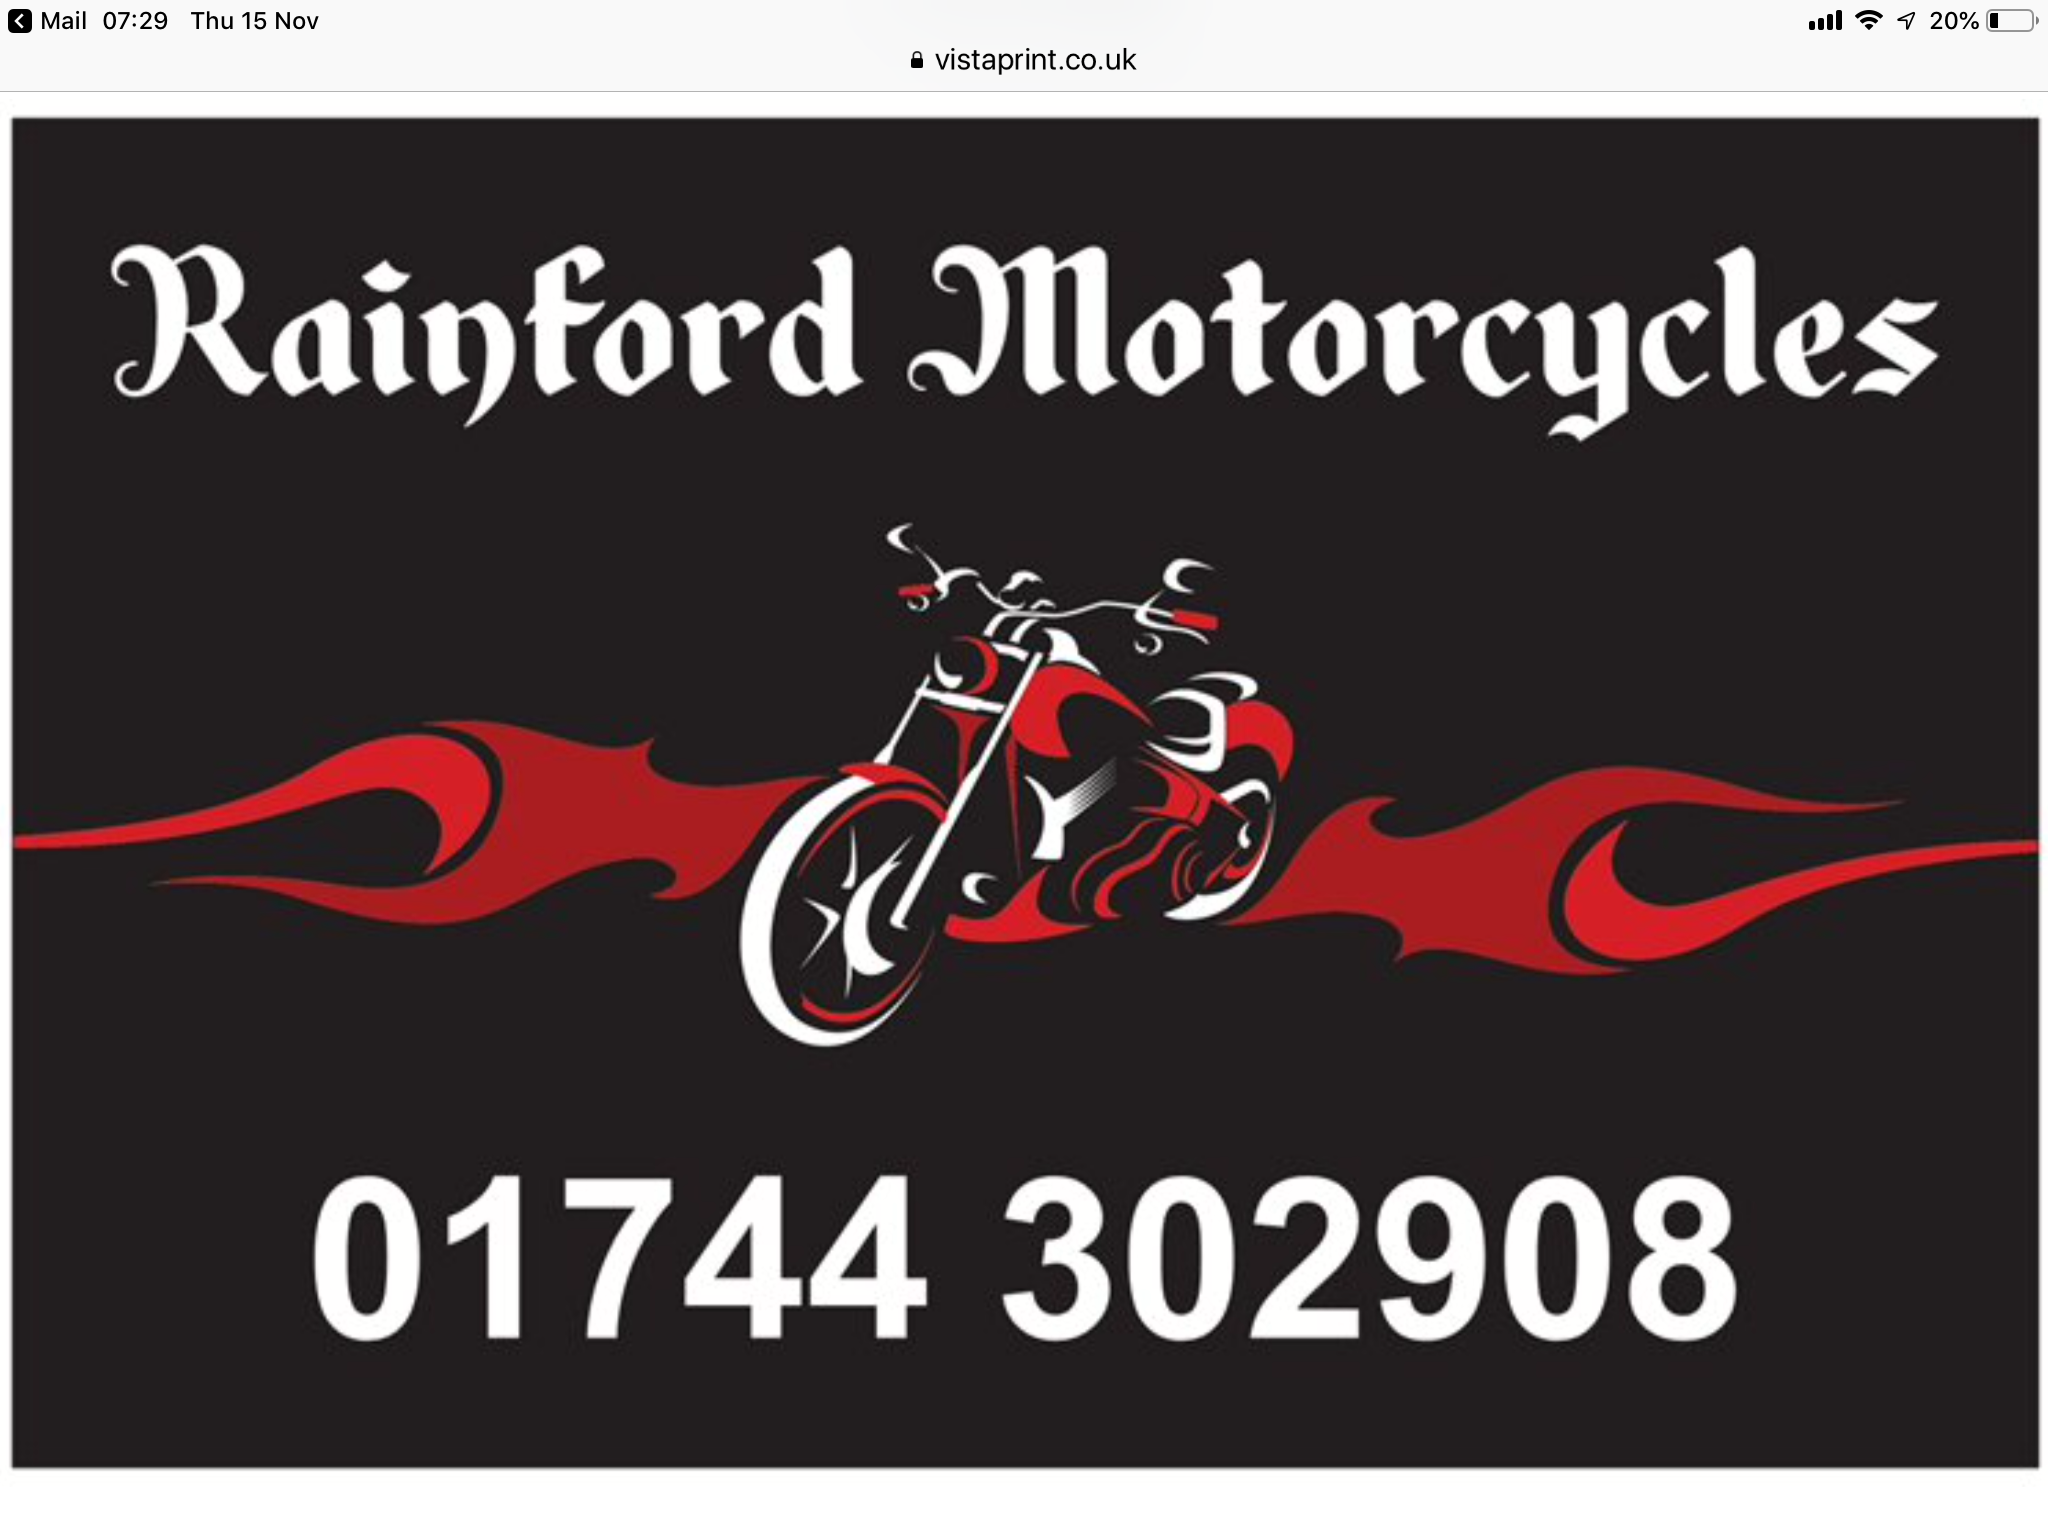 Rainford Motorcycles